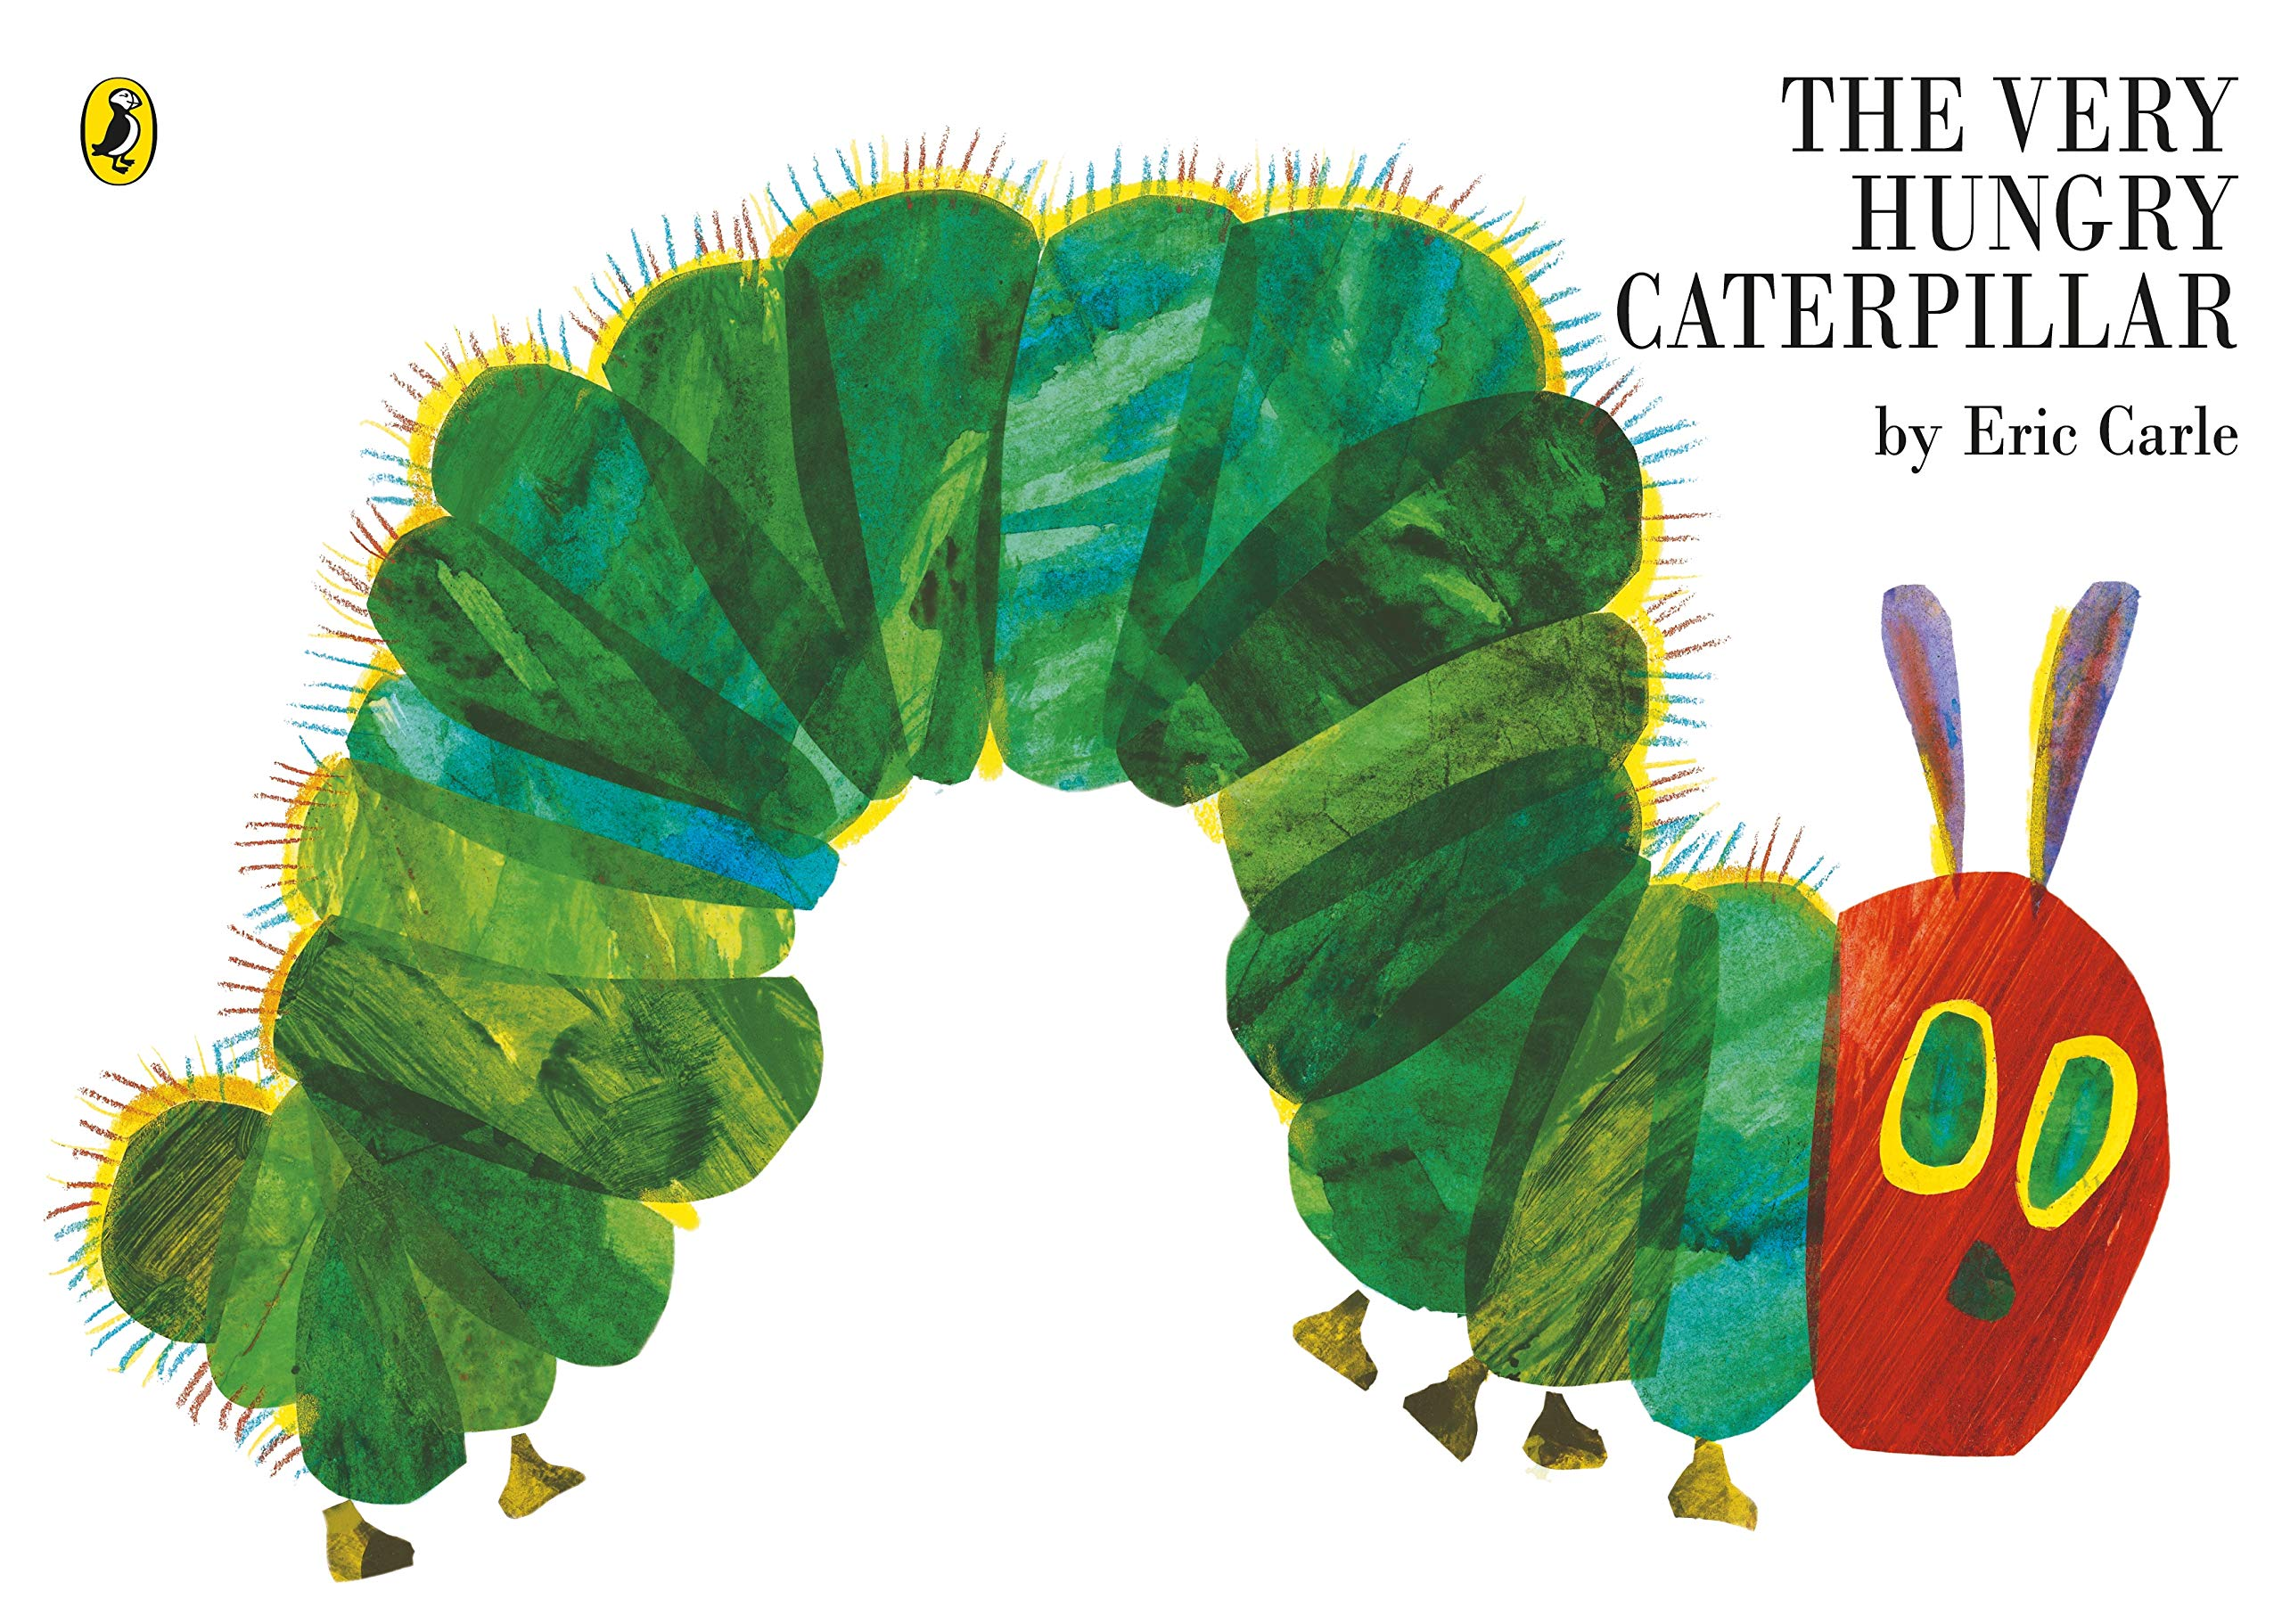 PETER JACKSON: 'THE VERY HUNGRY CATERPILLAR WILL HAVE TO BE 5 FILMS'